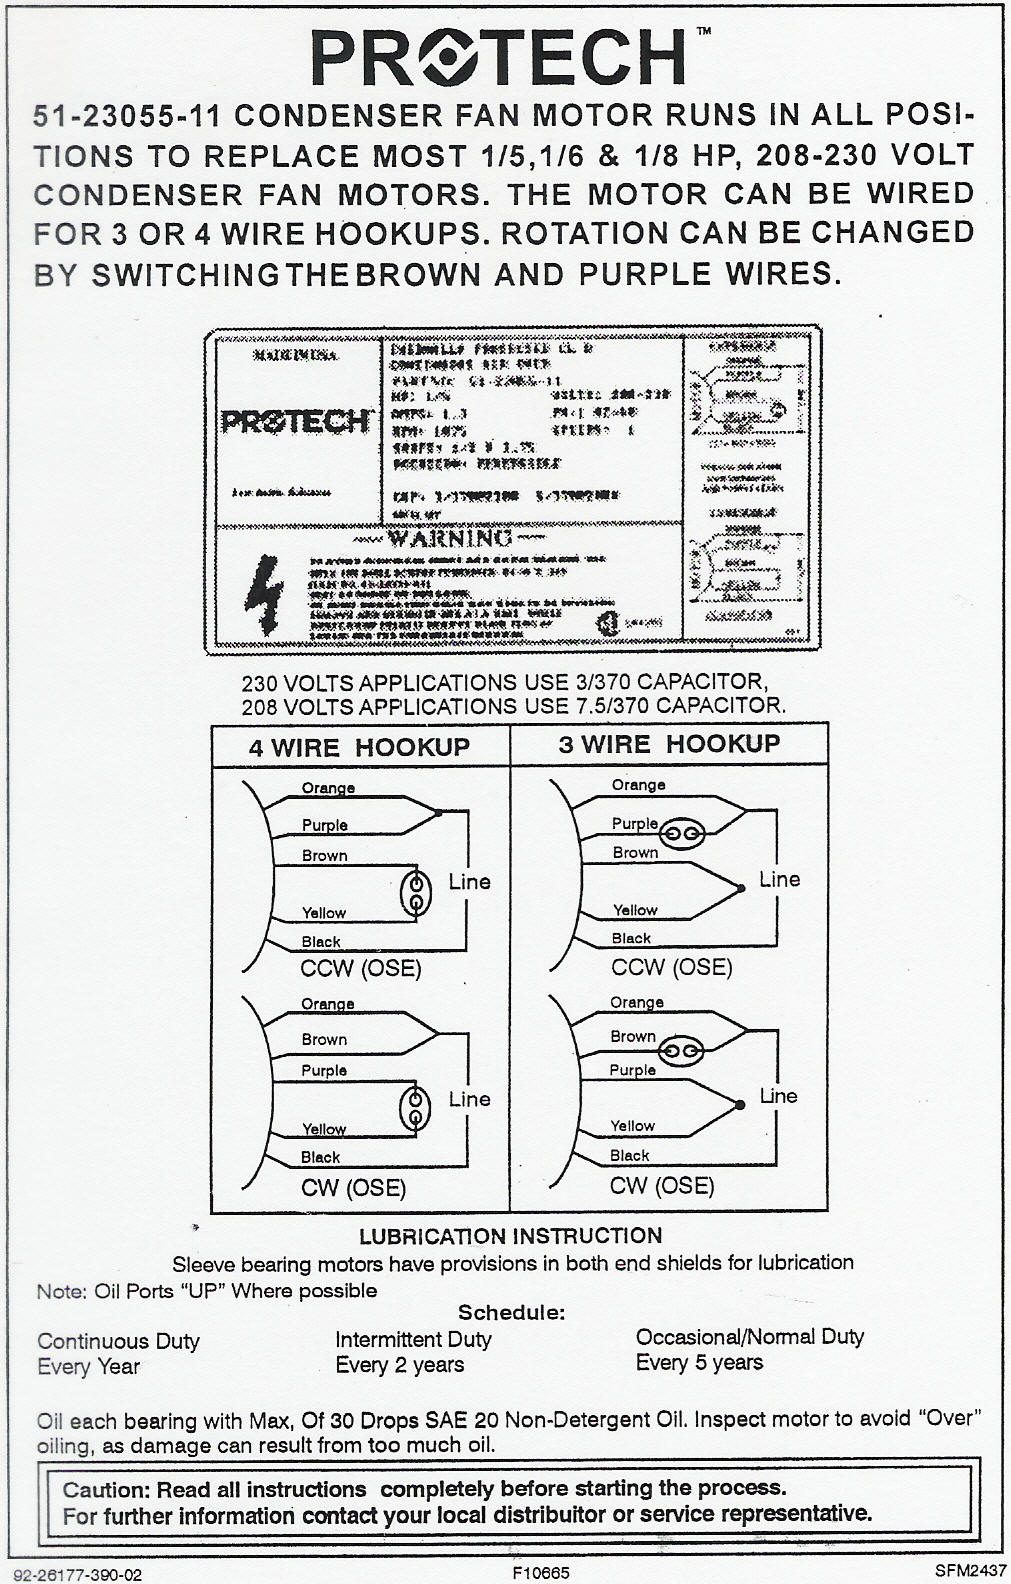 rheem ruud condenser fan motor 51 23055 11 wiring diagram armstrong furnace parts diagram wiring amana for diagram furnace guva090bx50 #44